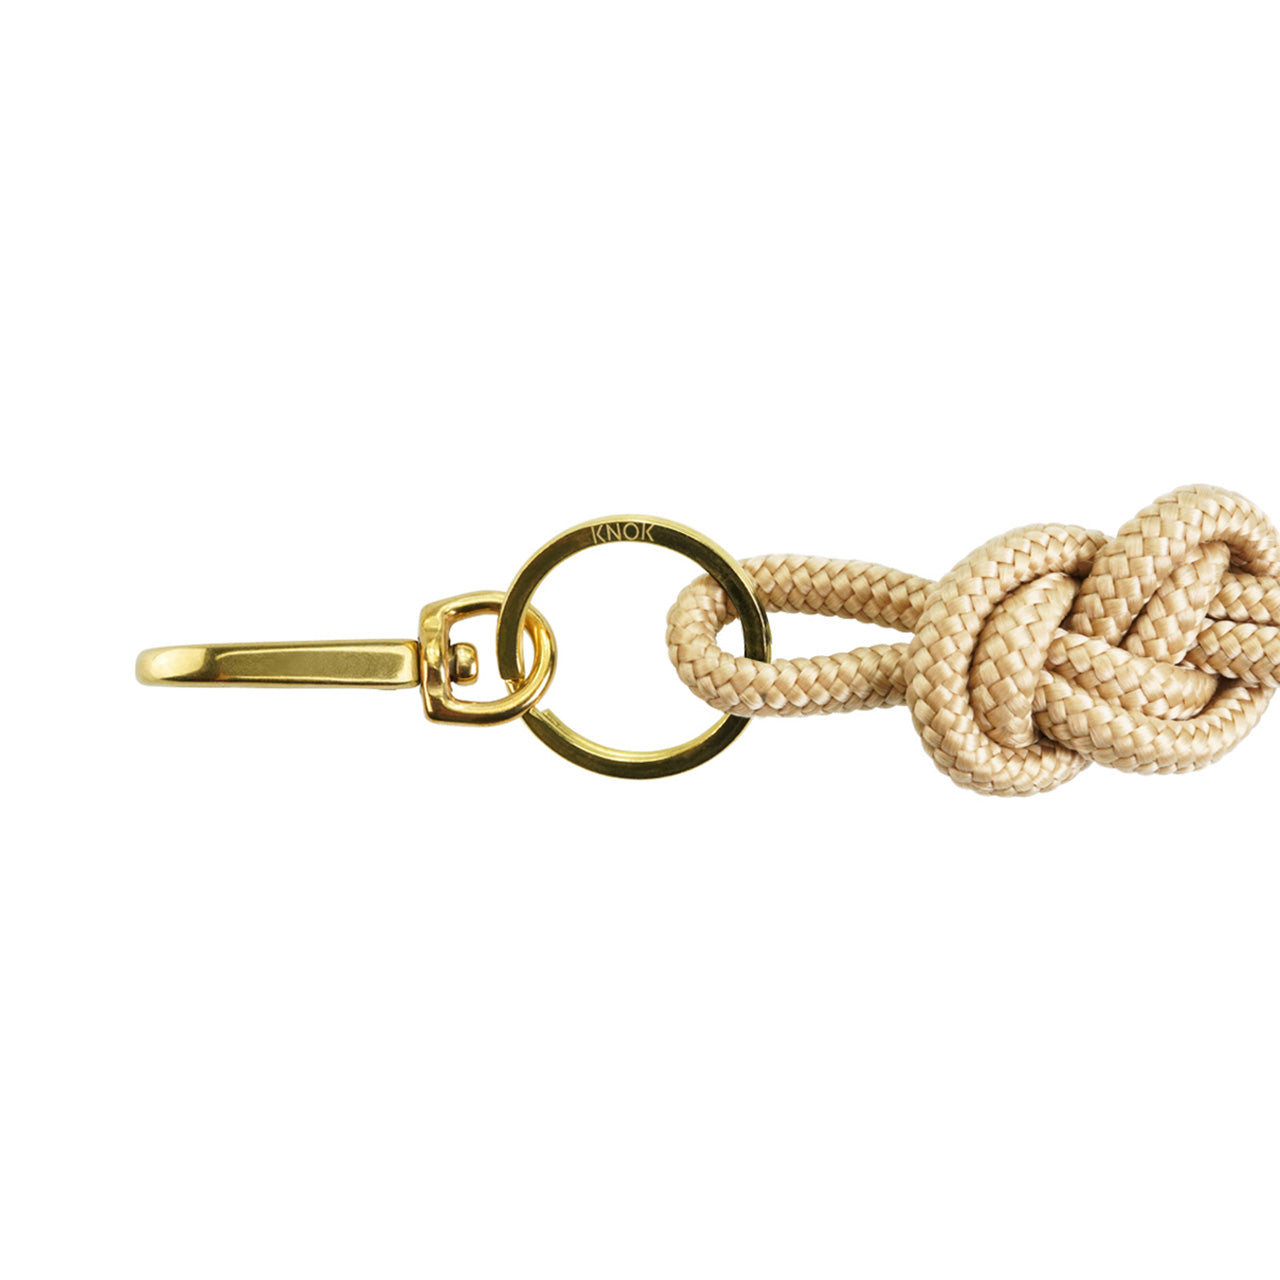 KNOK-KEY-KNOT-Gold